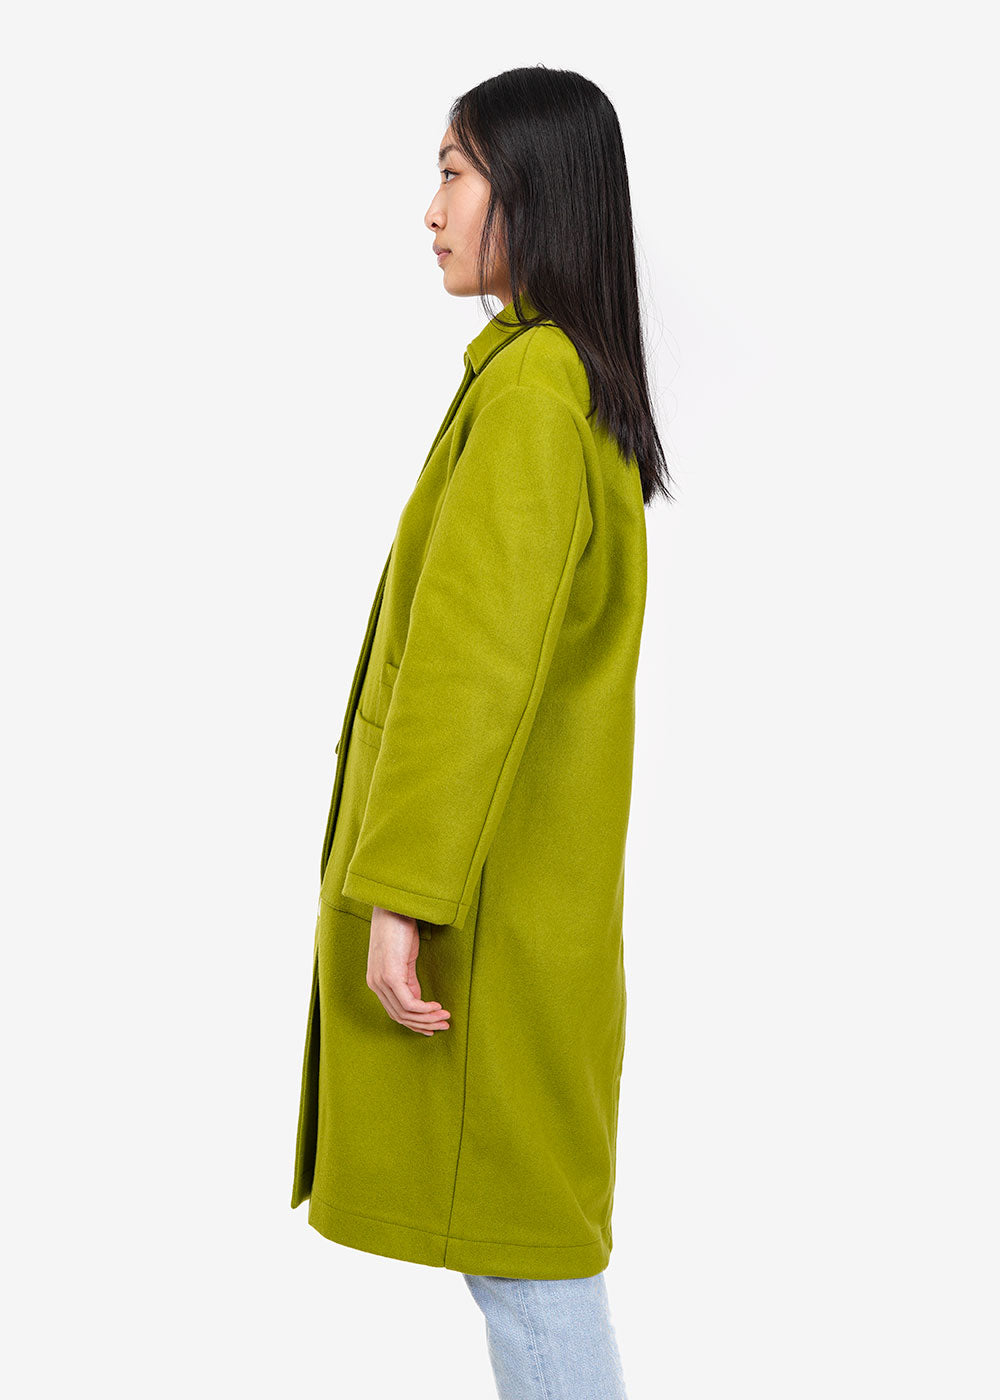 Paloma Wool Lagone Jacket — Shop sustainable fashion and slow fashion at New Classics Studios